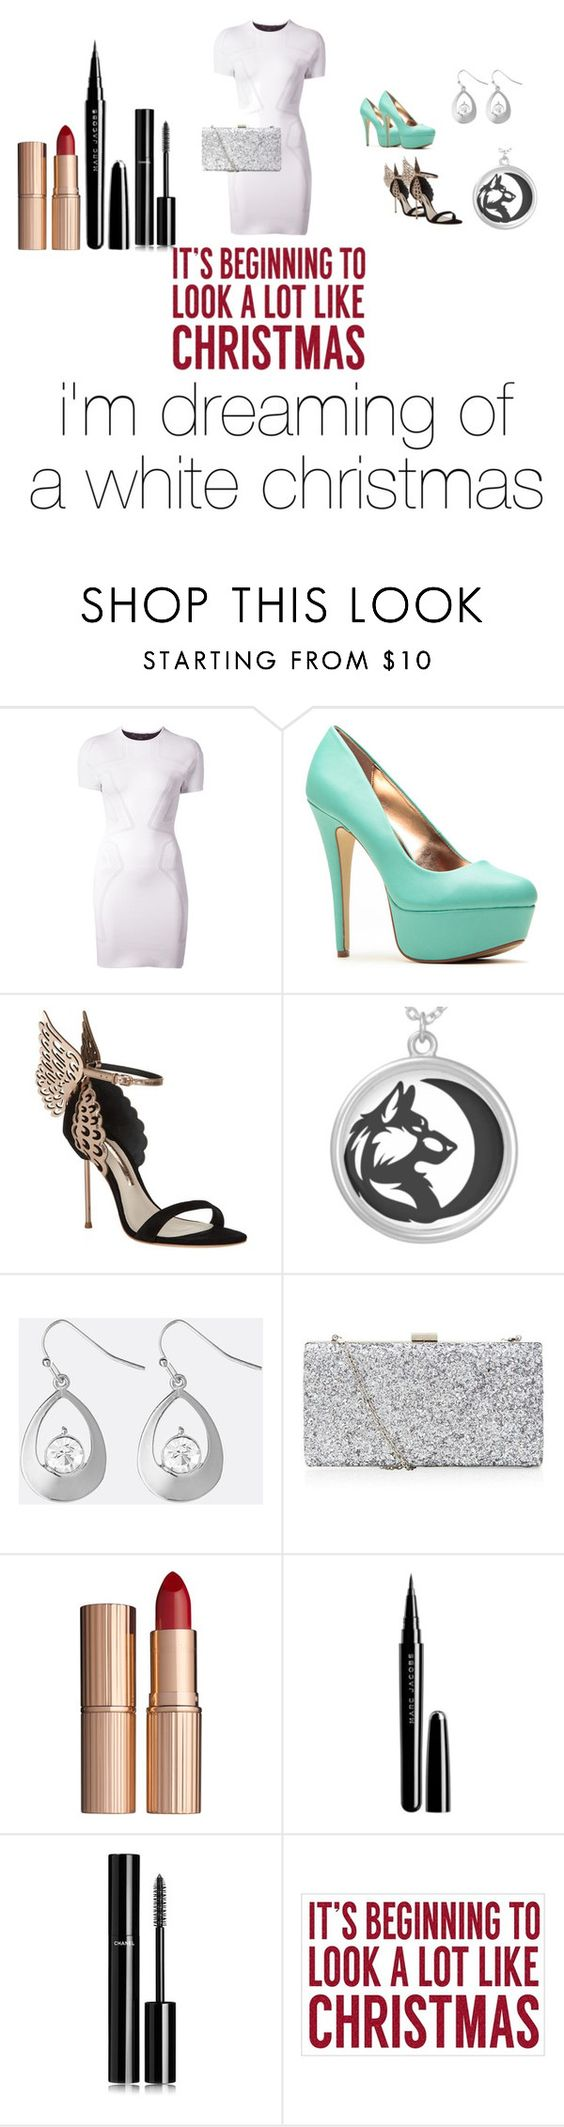 """Christmas"" by alexis3henry ❤ liked on Polyvore featuring Alexander Wang, Sophia Webster, Avenue, Charlotte Tilbury, Marc Jacobs, Chanel and Sixtrees"